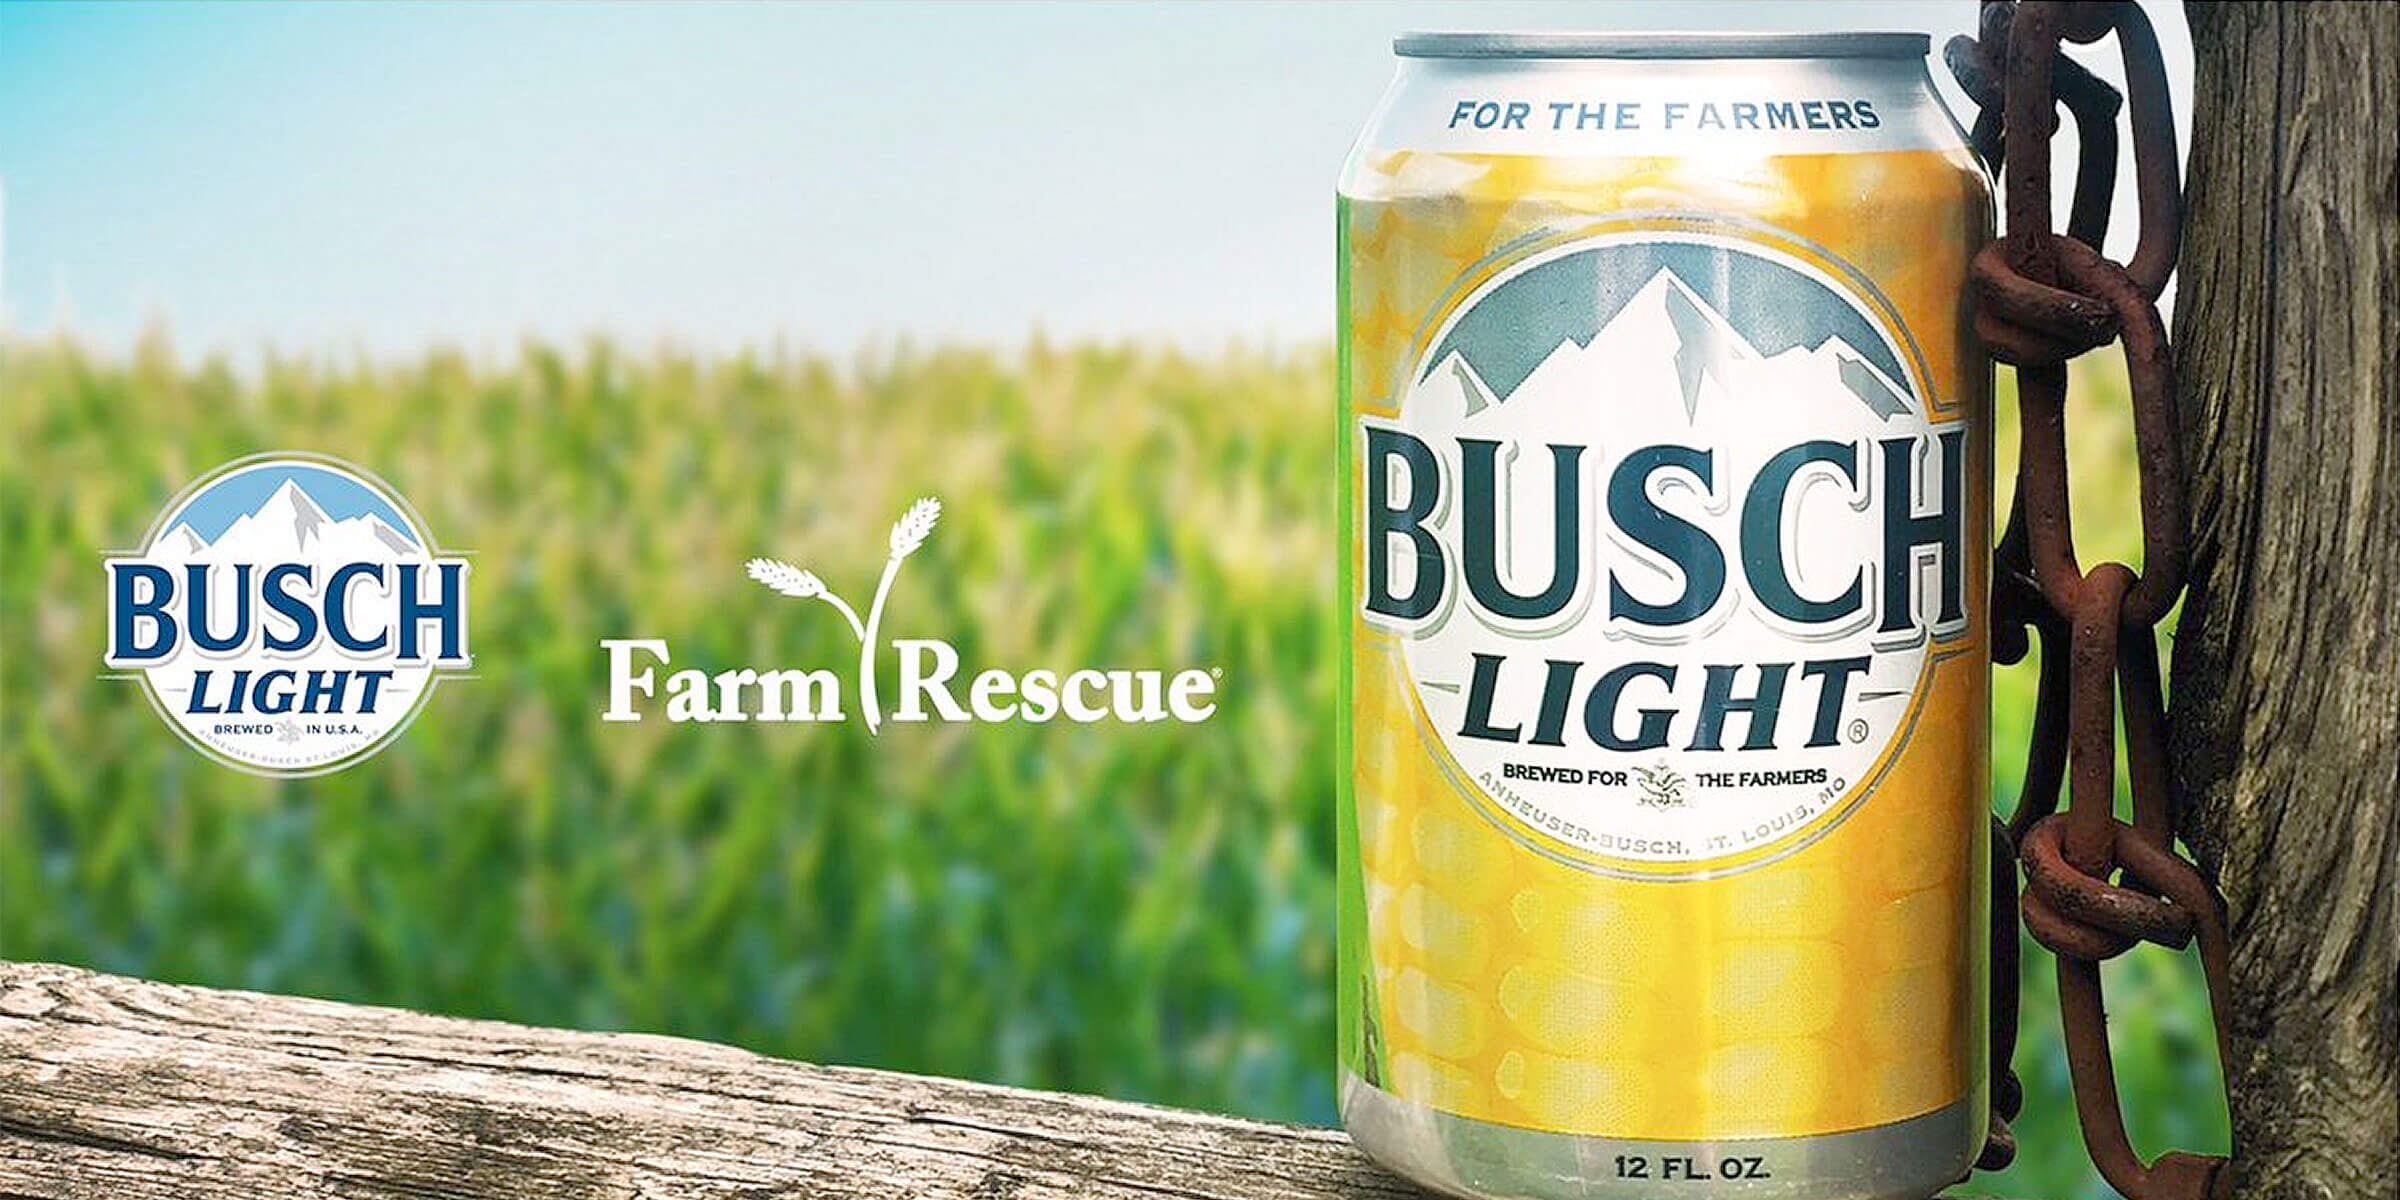 Busch, a supporter of agricultural communities, will donate funds to nonprofit Farm Rescue to expand into Kansas while launching limited-edition Corn Cans.